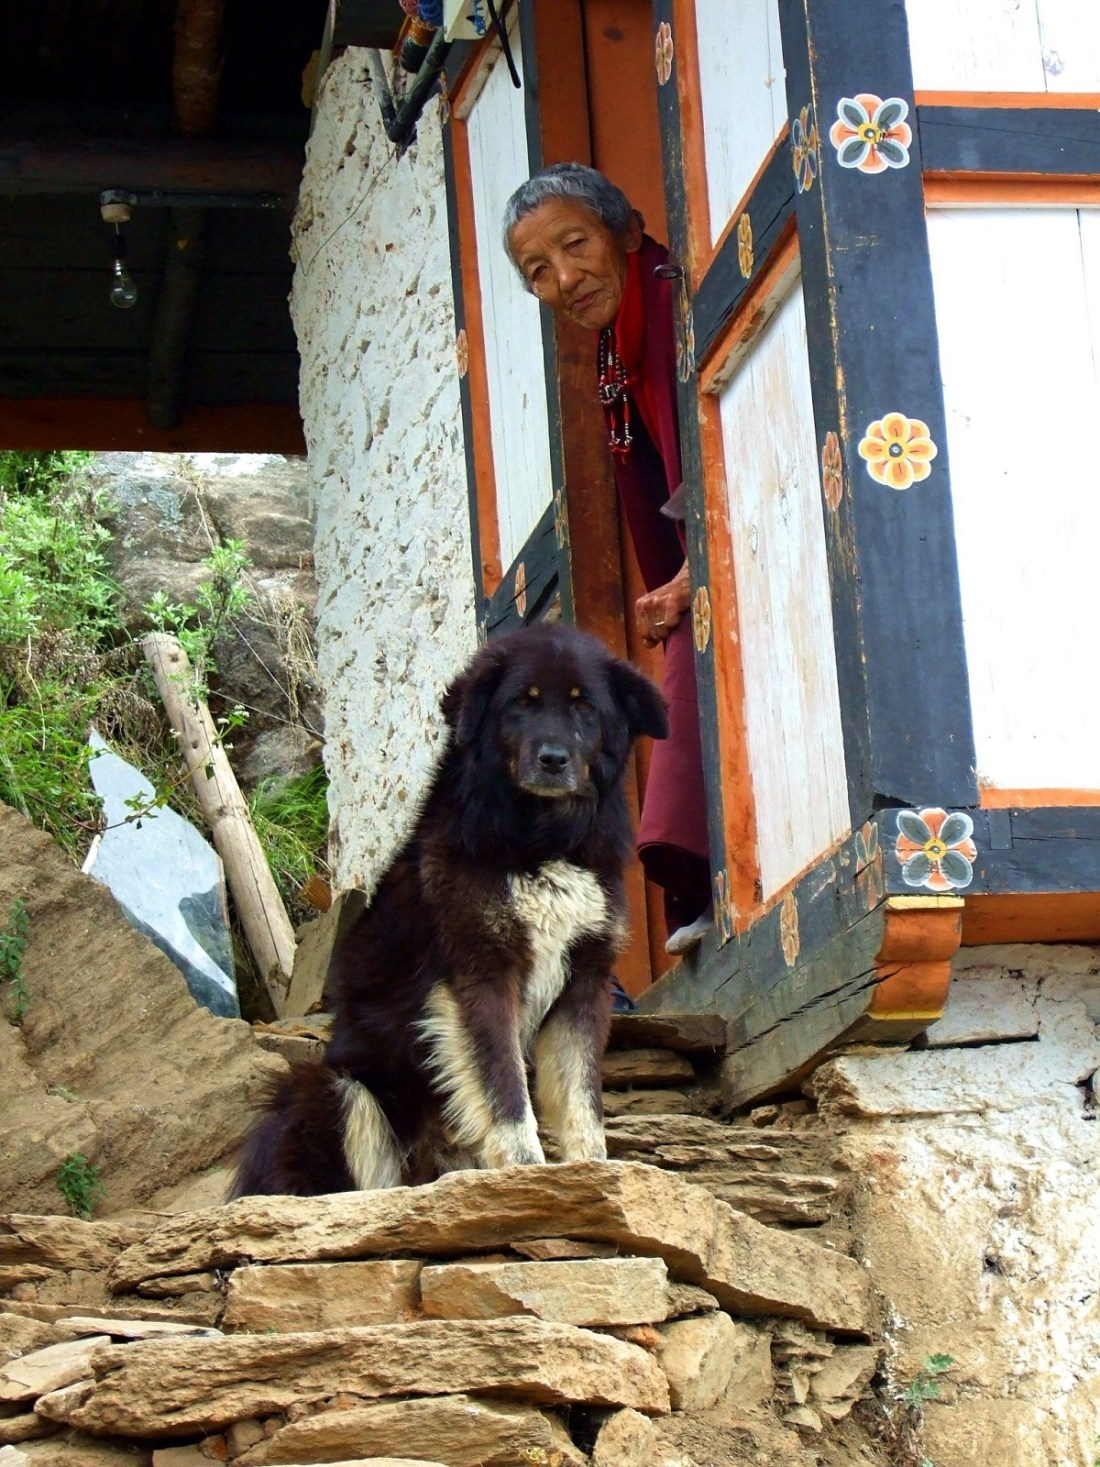 A watchdog guards his mistresss cottage